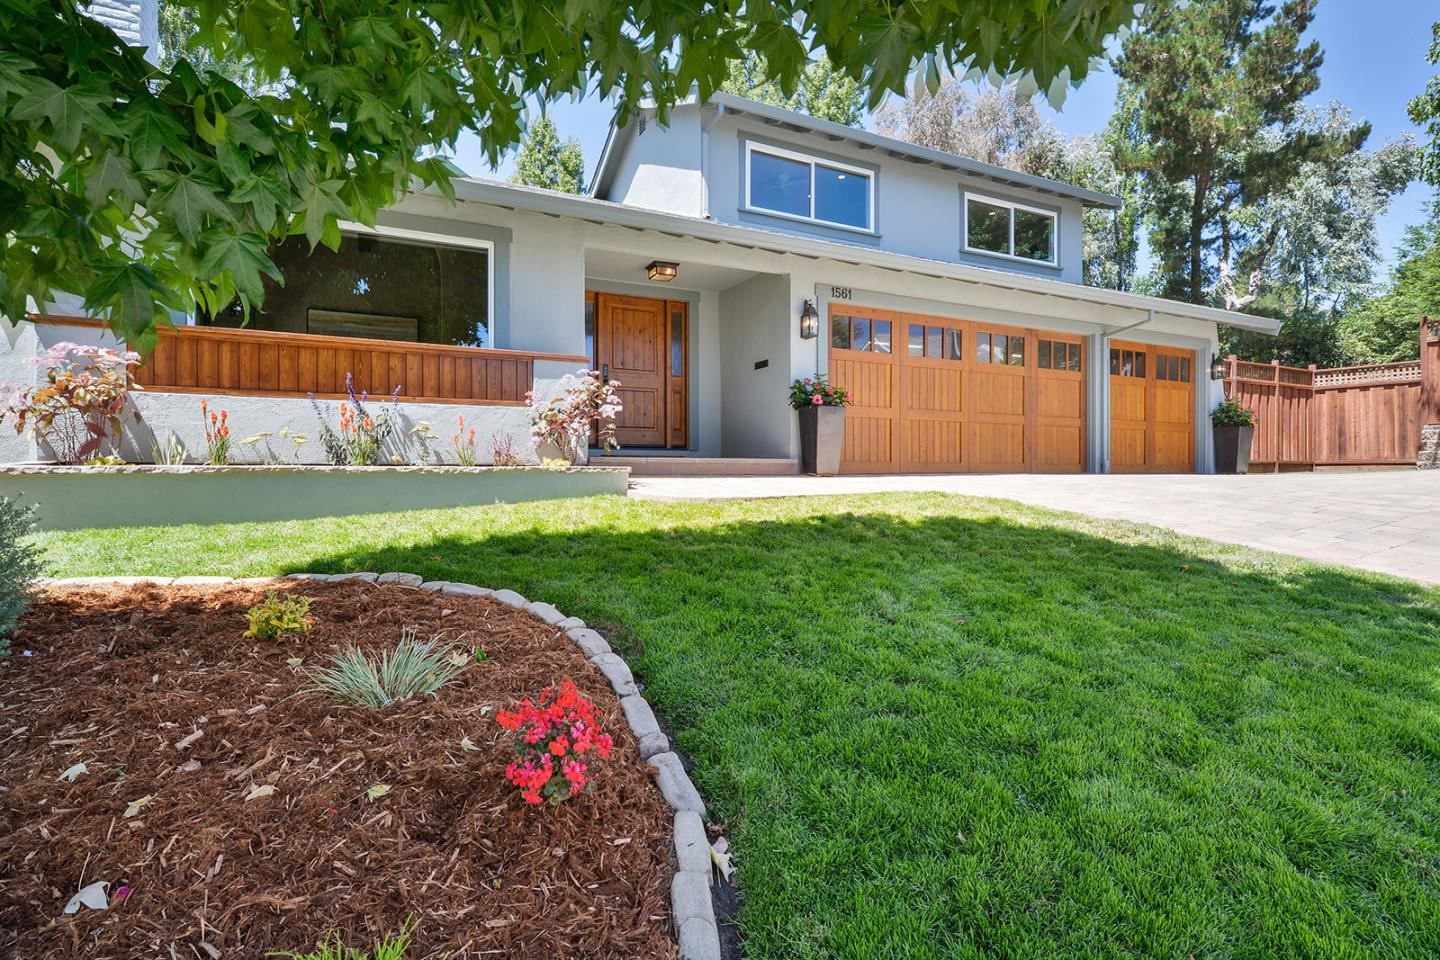 Additional photo for property listing at 1561 Cherrywood Drive  San Mateo, Kalifornien 94403 Vereinigte Staaten